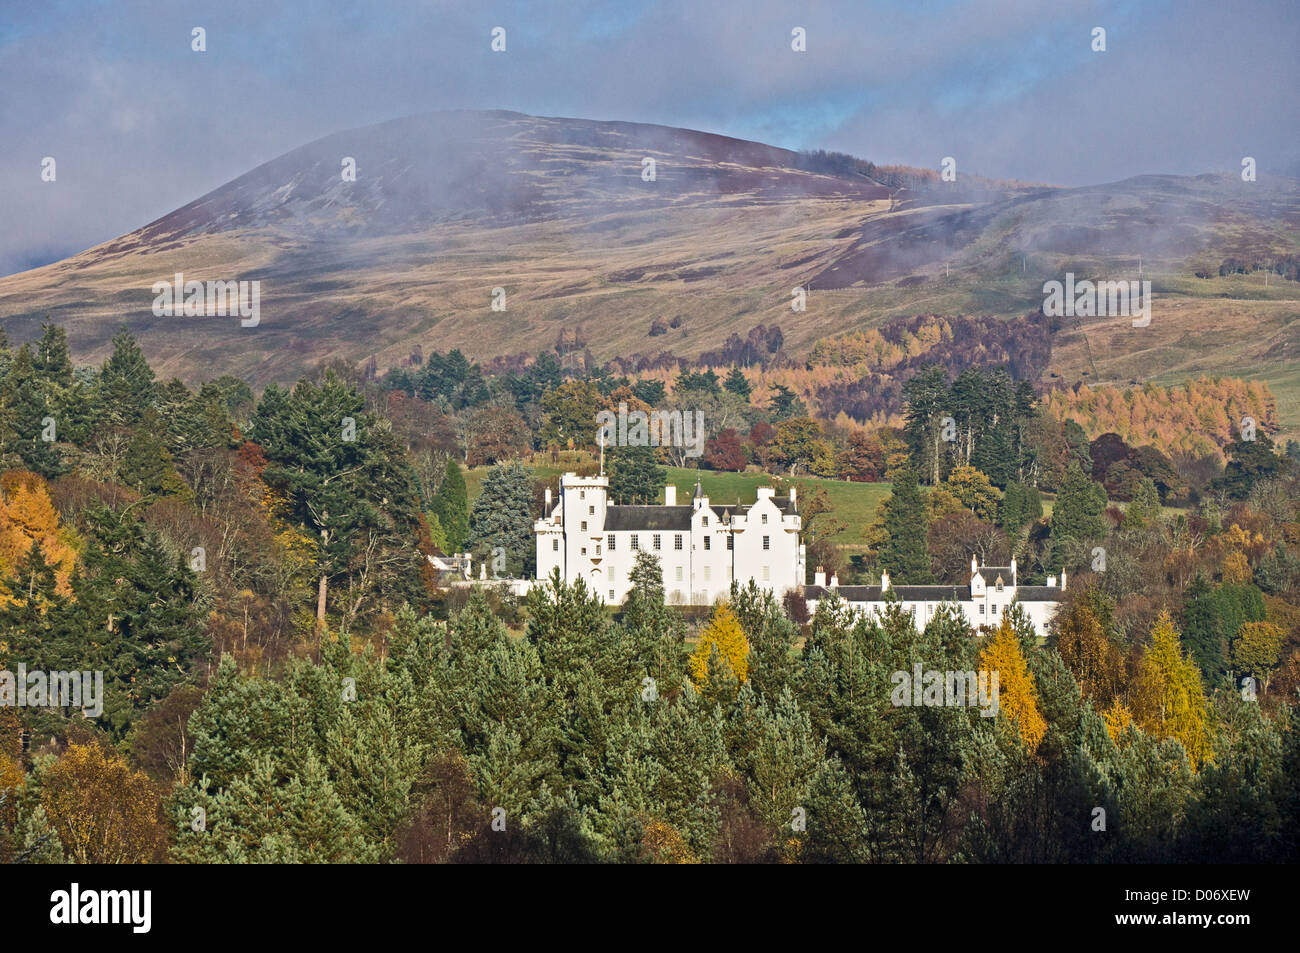 Blair Castle in Blair Atholl Perthshire Scotland on a sunny autumn day as seen from the A9 road - Stock Image